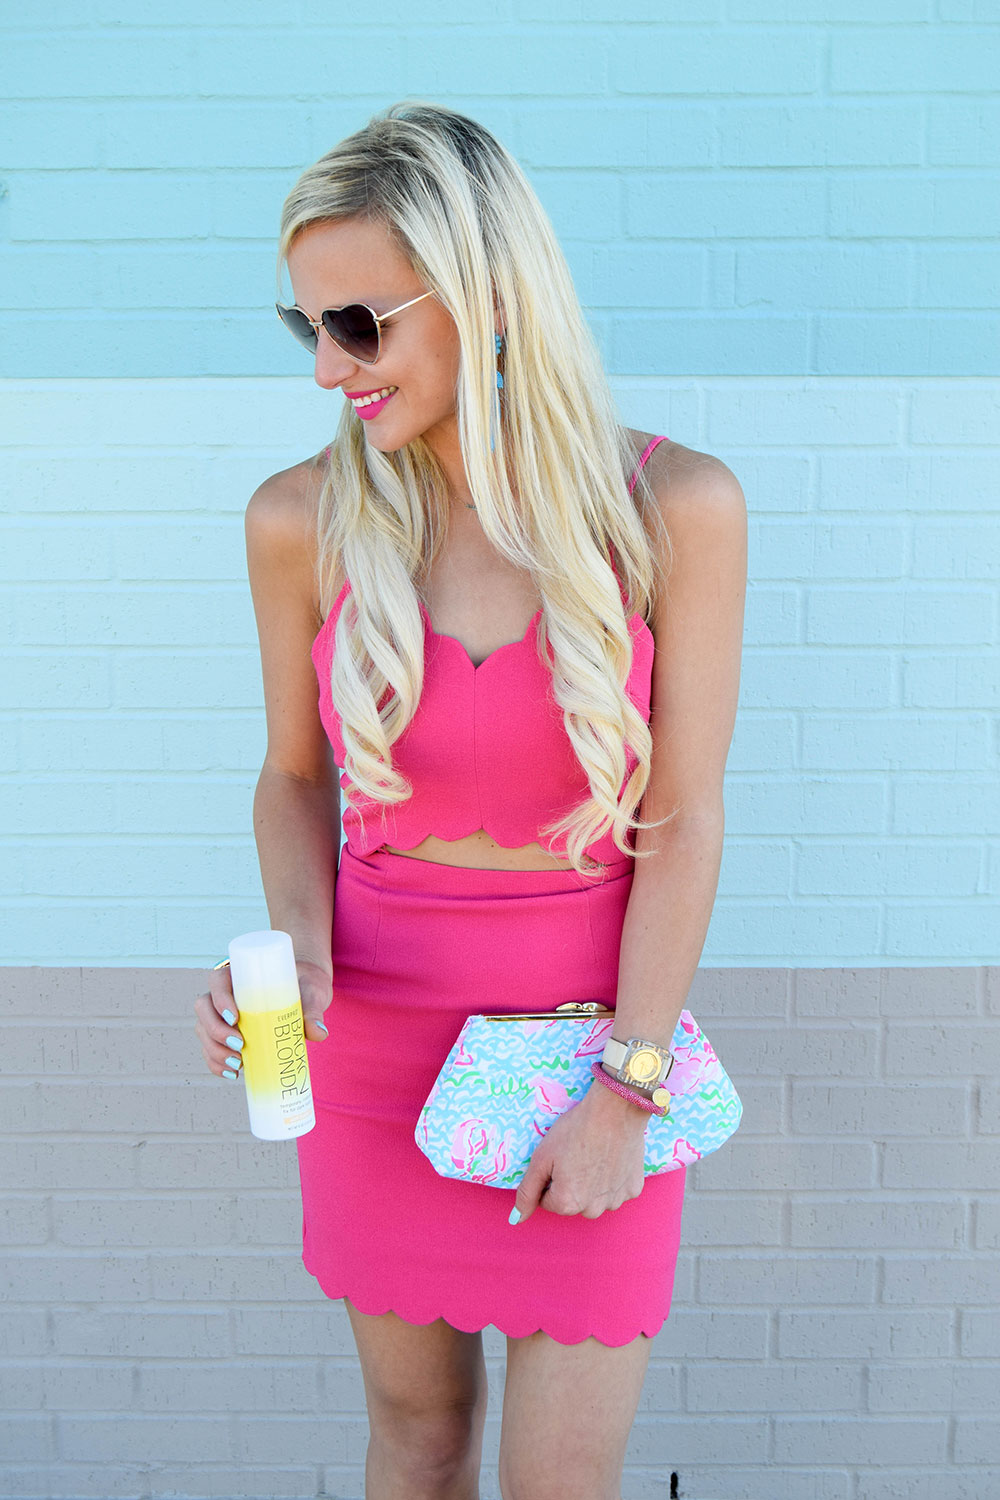 vandi-fair-dallas-fashion-blog-lauren-vandiver-southern-texas-travel-blogger-everpro-back2blonde-back-2-blonde-root-highlight-spray-bff-joa-cutout-scallop-pink-bodycon-dress-3